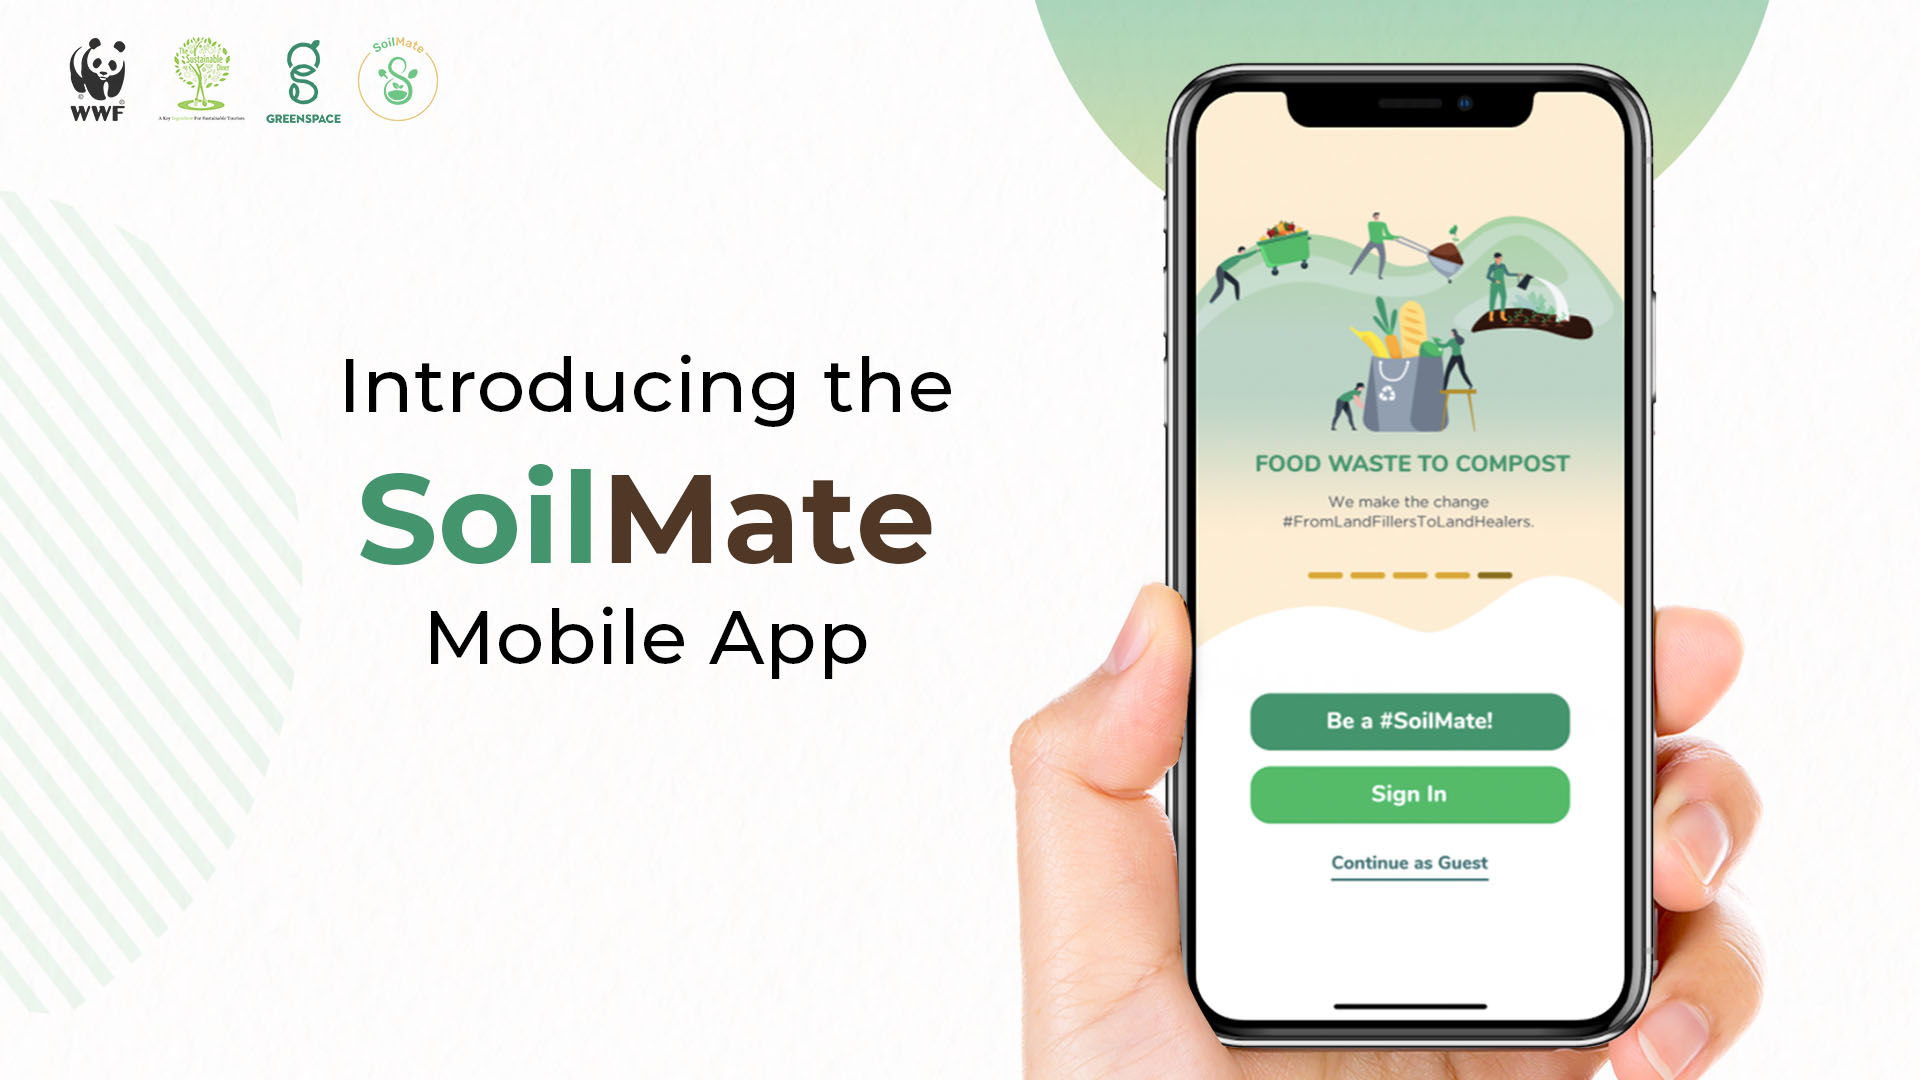 """""""Introducing the SoilMate mobile App."""" Shows a photo of a hand holding a smartphone with the app open. Buttons say """"Be a SoilMate!"""" and """"Sign In."""""""